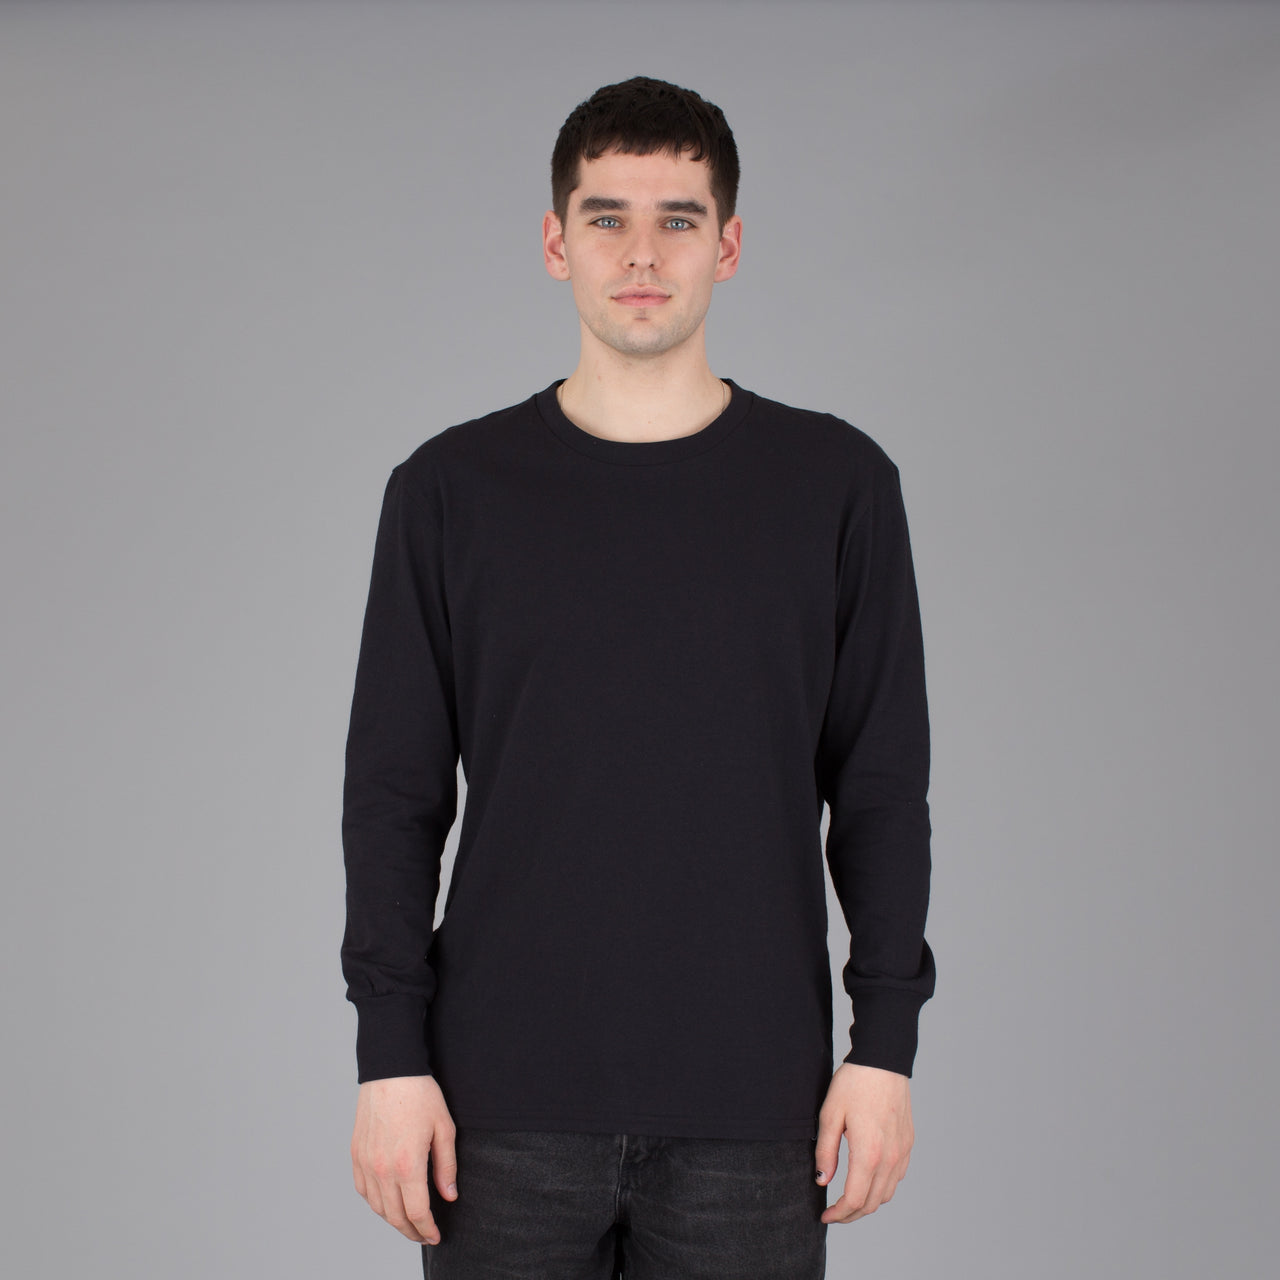 Men's Current Fit Long Sleeve Tee - Black